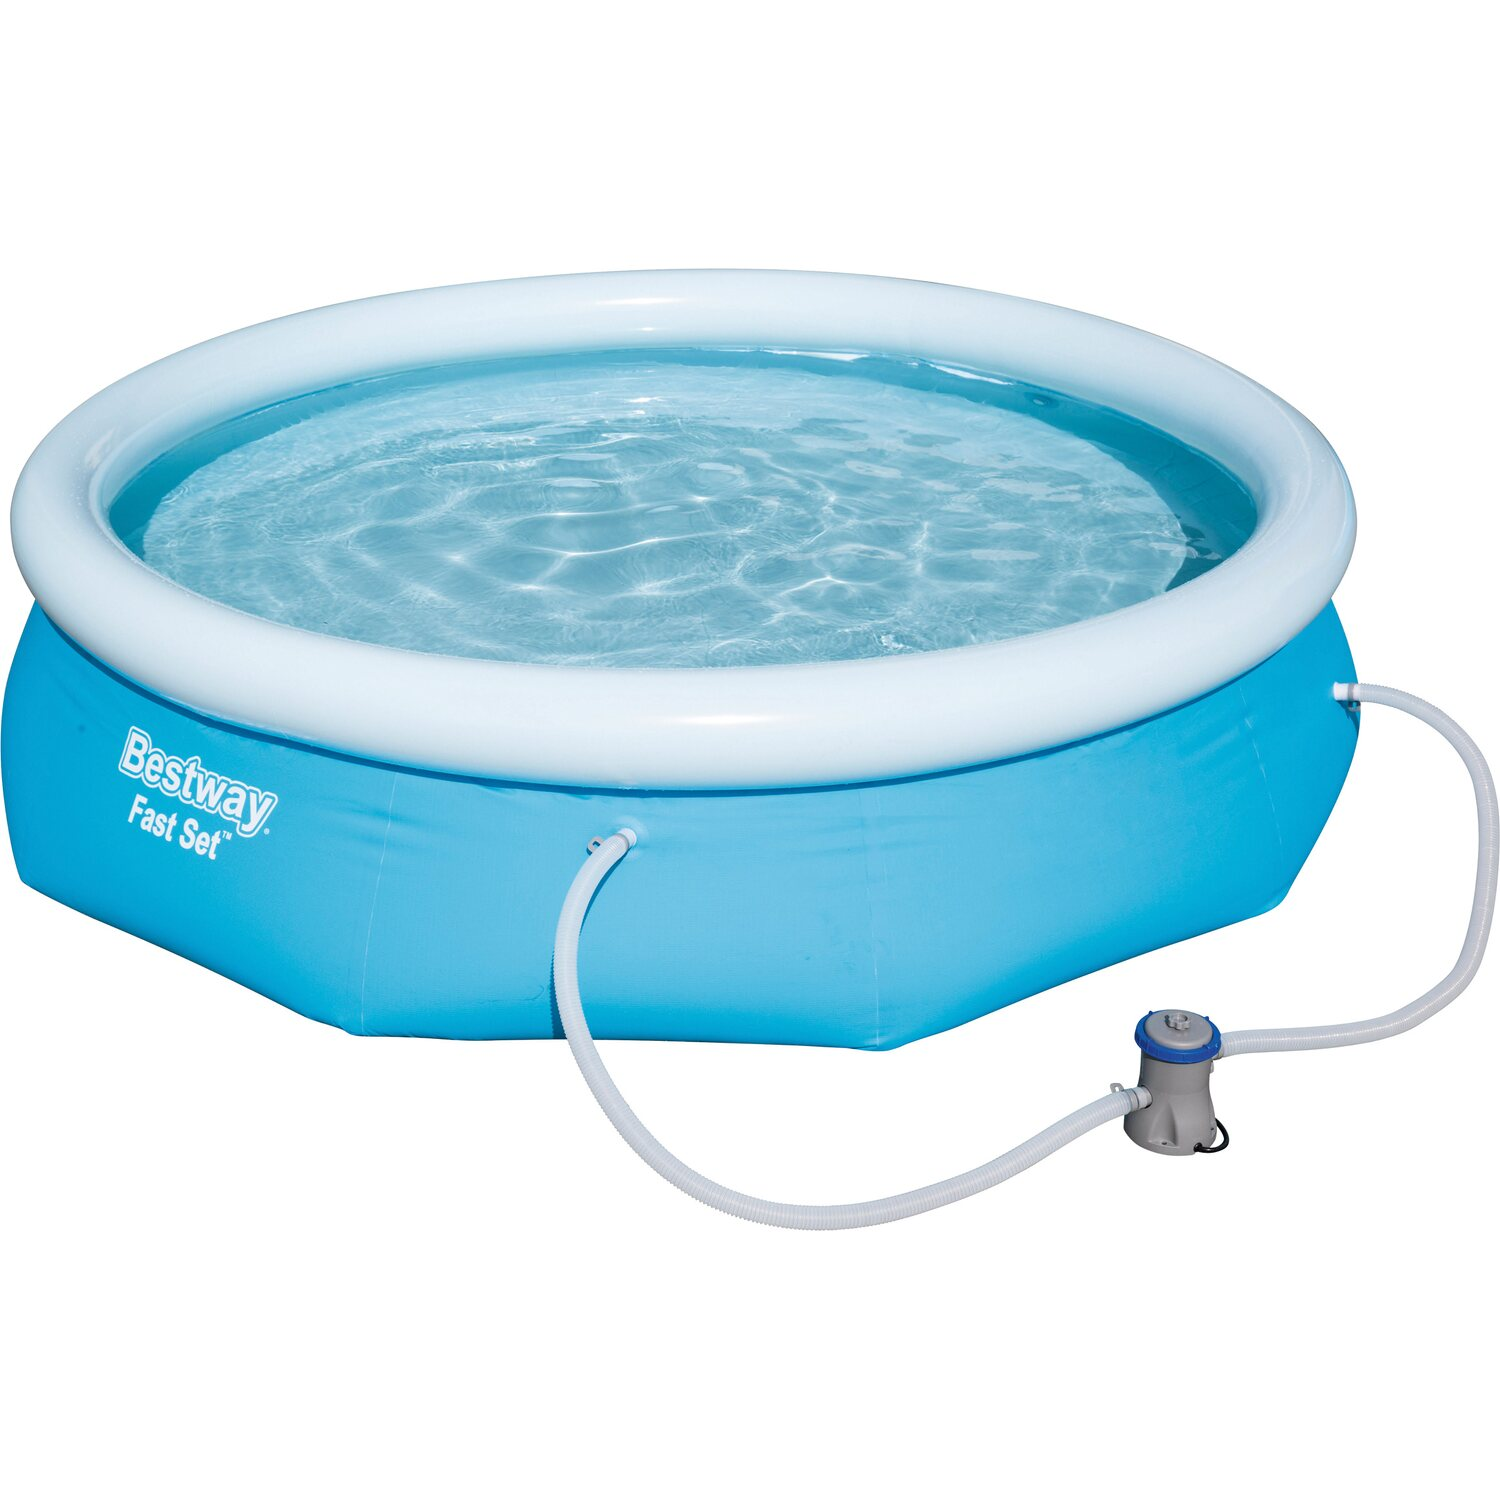 Swimming pool online kaufen bei obi for Obi sandfilteranlage pool